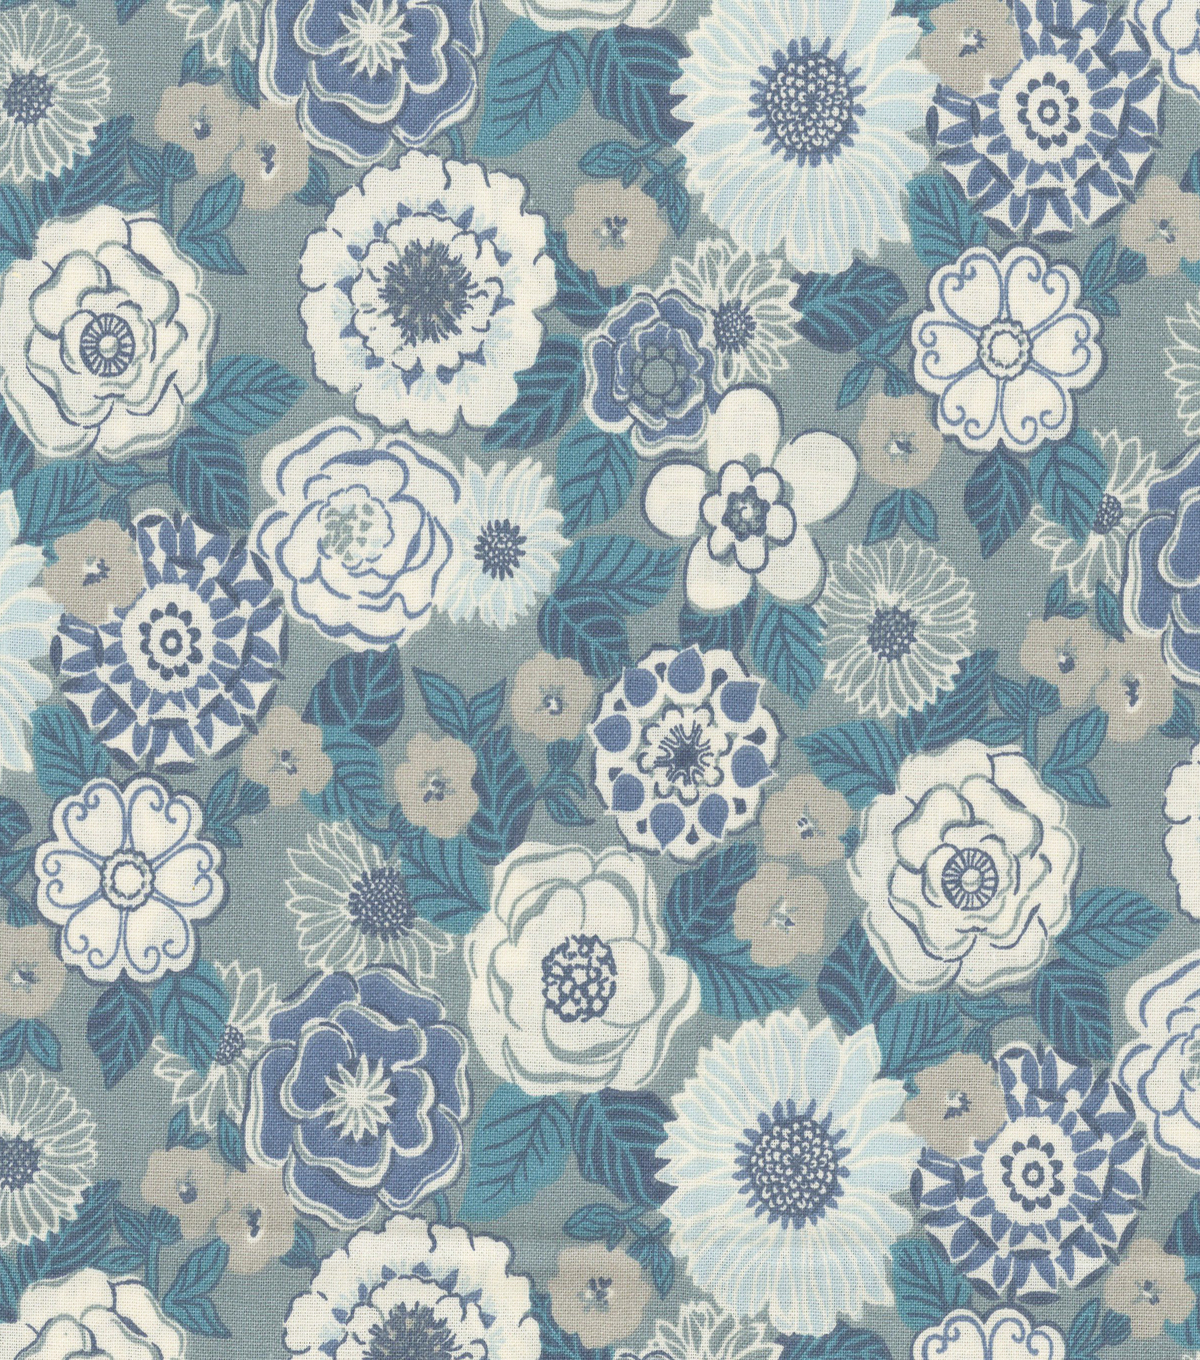 Keepsake Calico Cotton Fabric -Claribel Teal